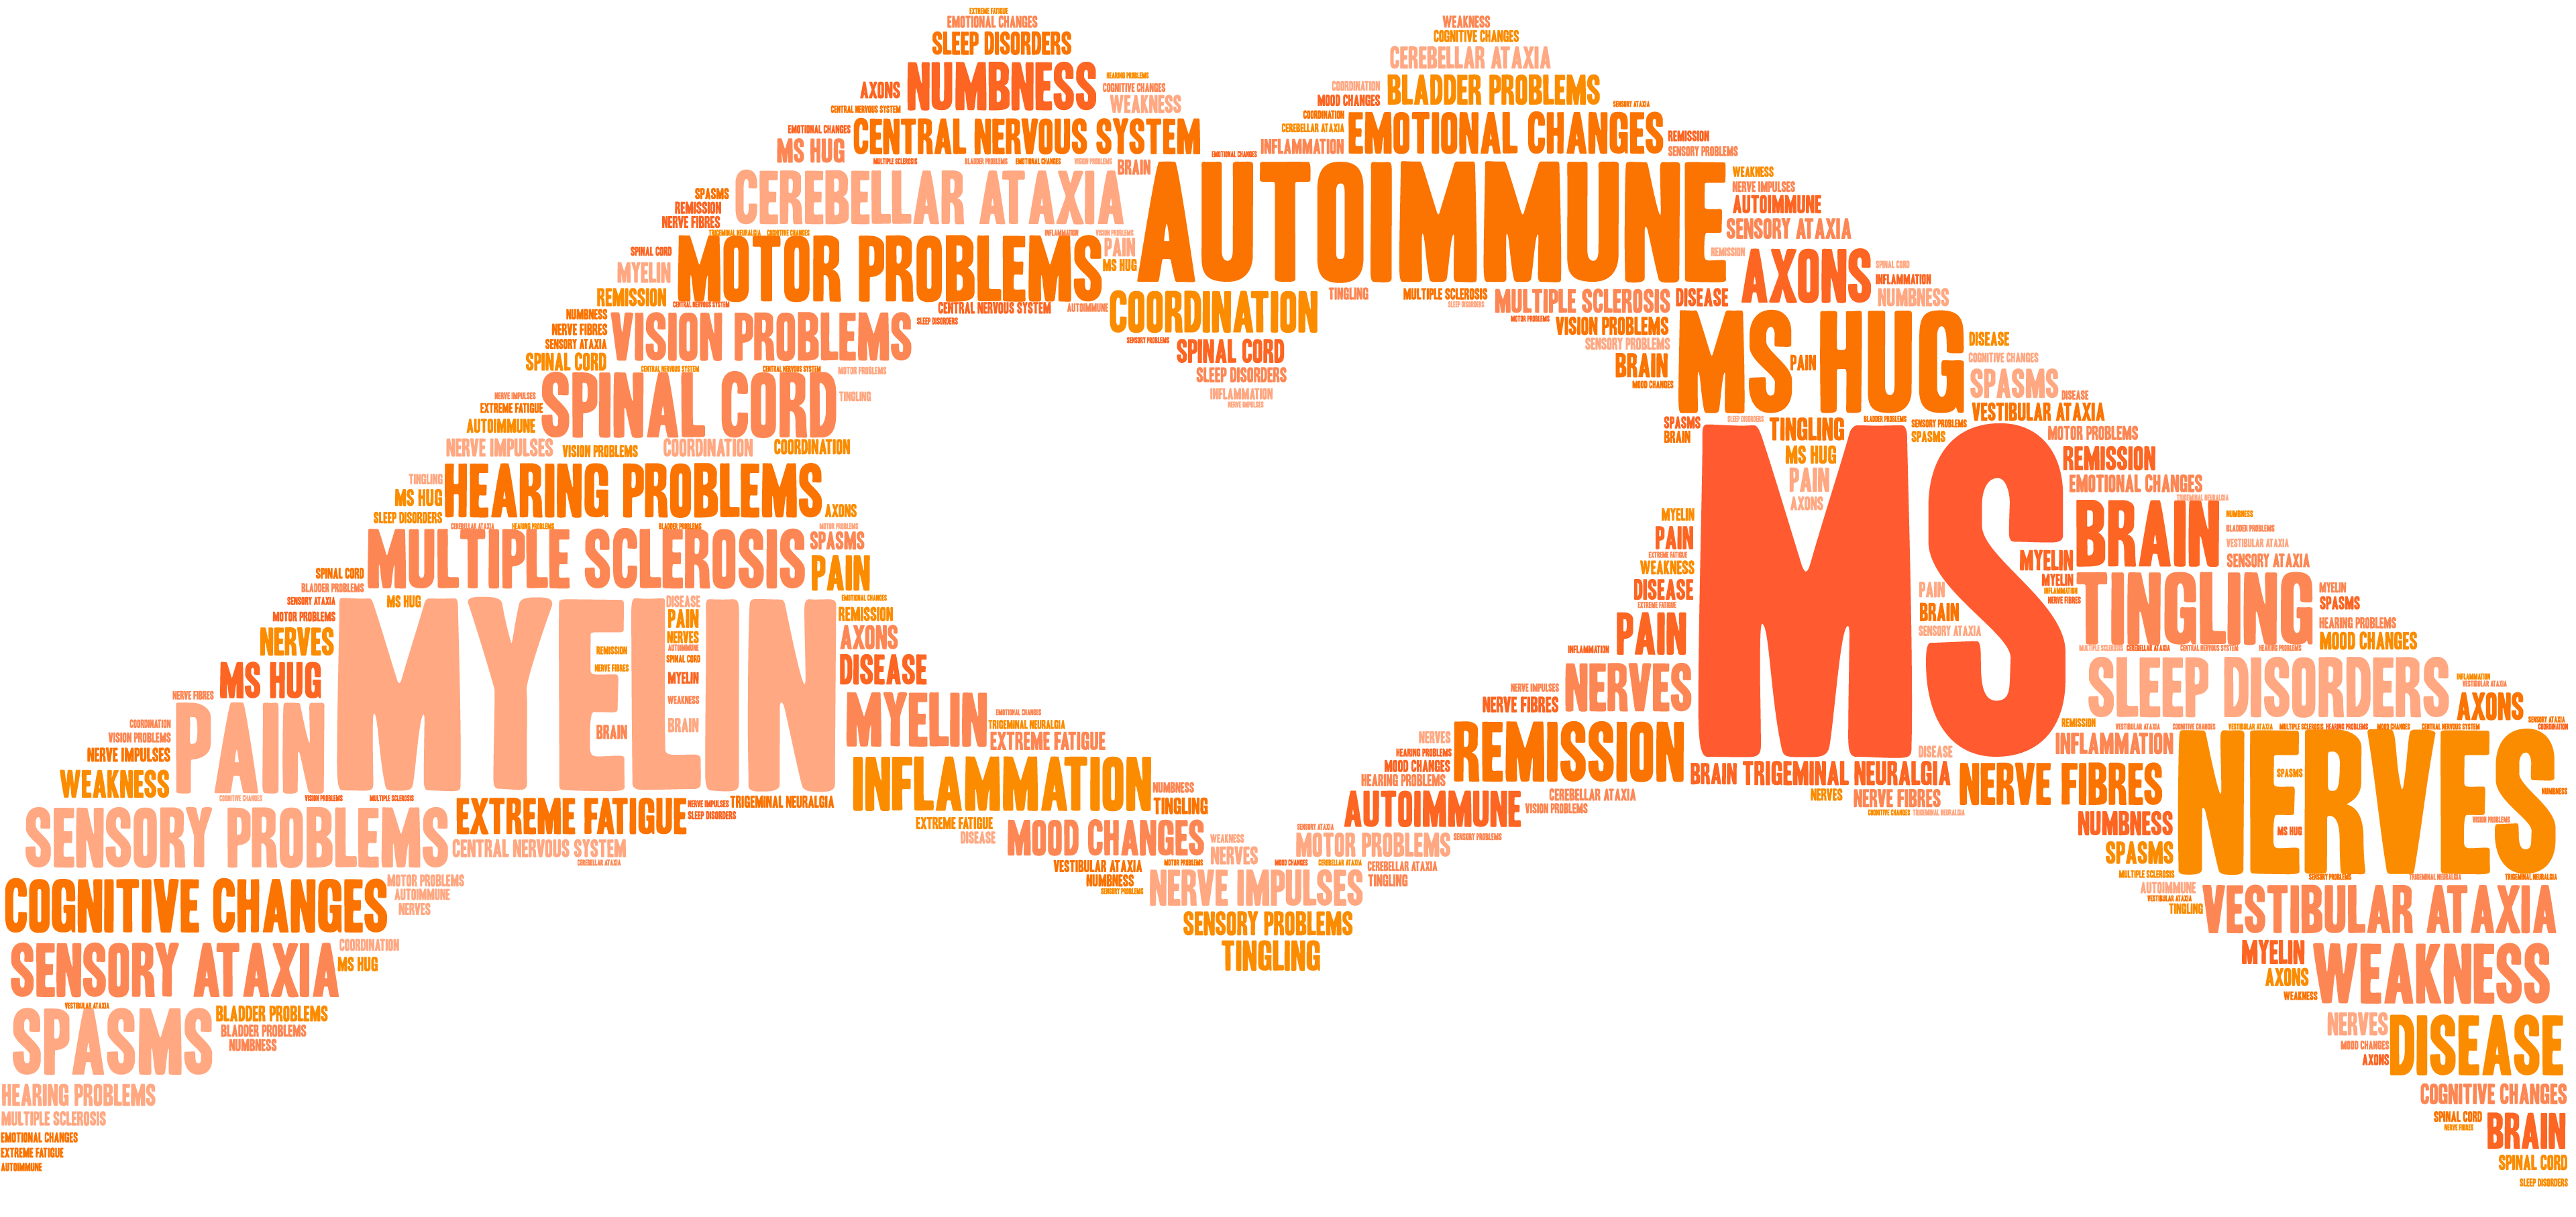 The role of heavy metals in autoimmunity (and how to treat)